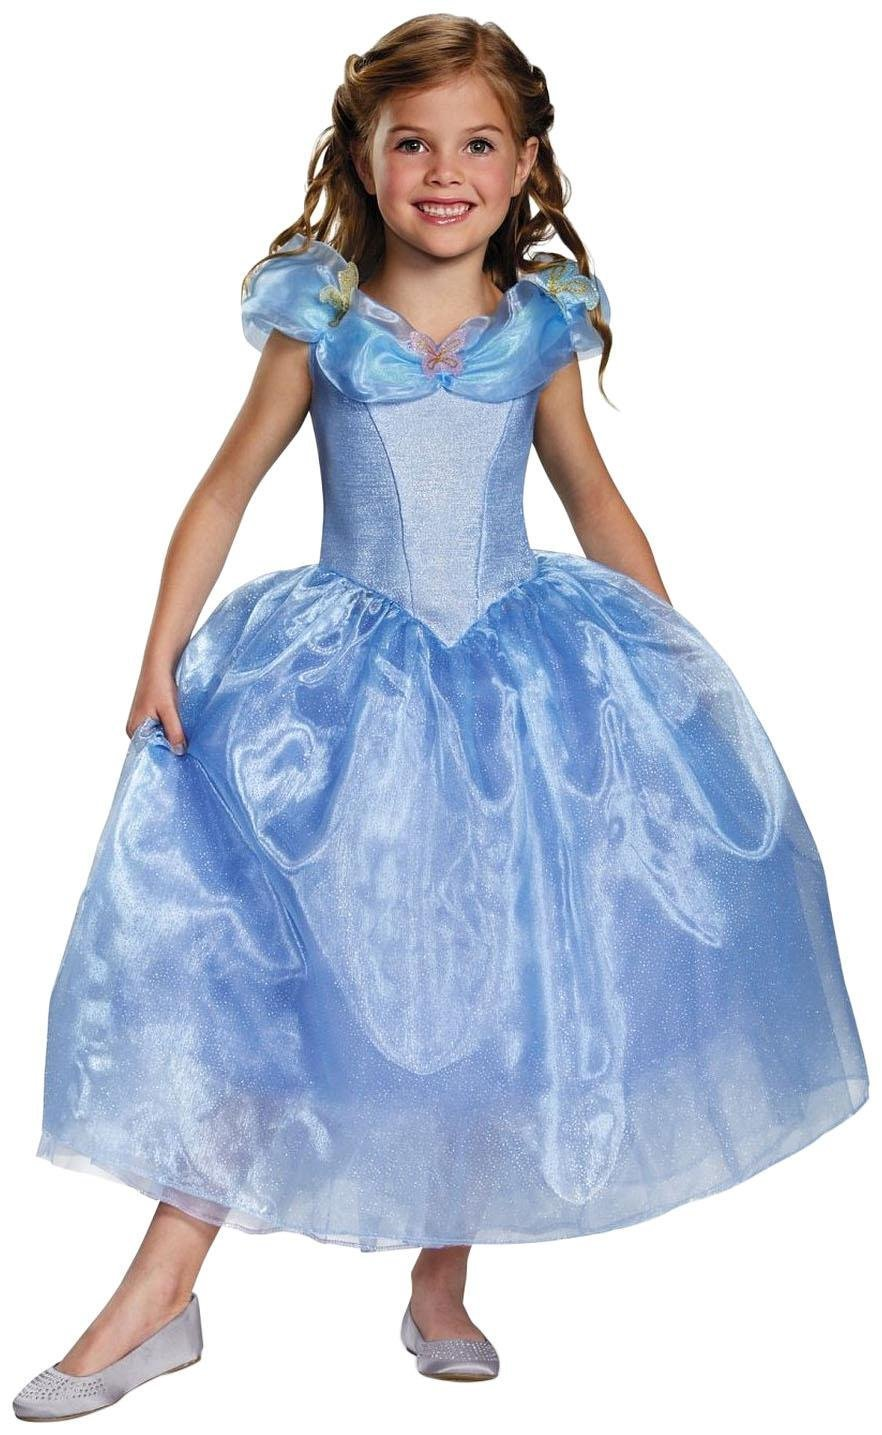 Disguise Cinderella Movie Deluxe Costume, X-Small (3T-4T) by Disguise